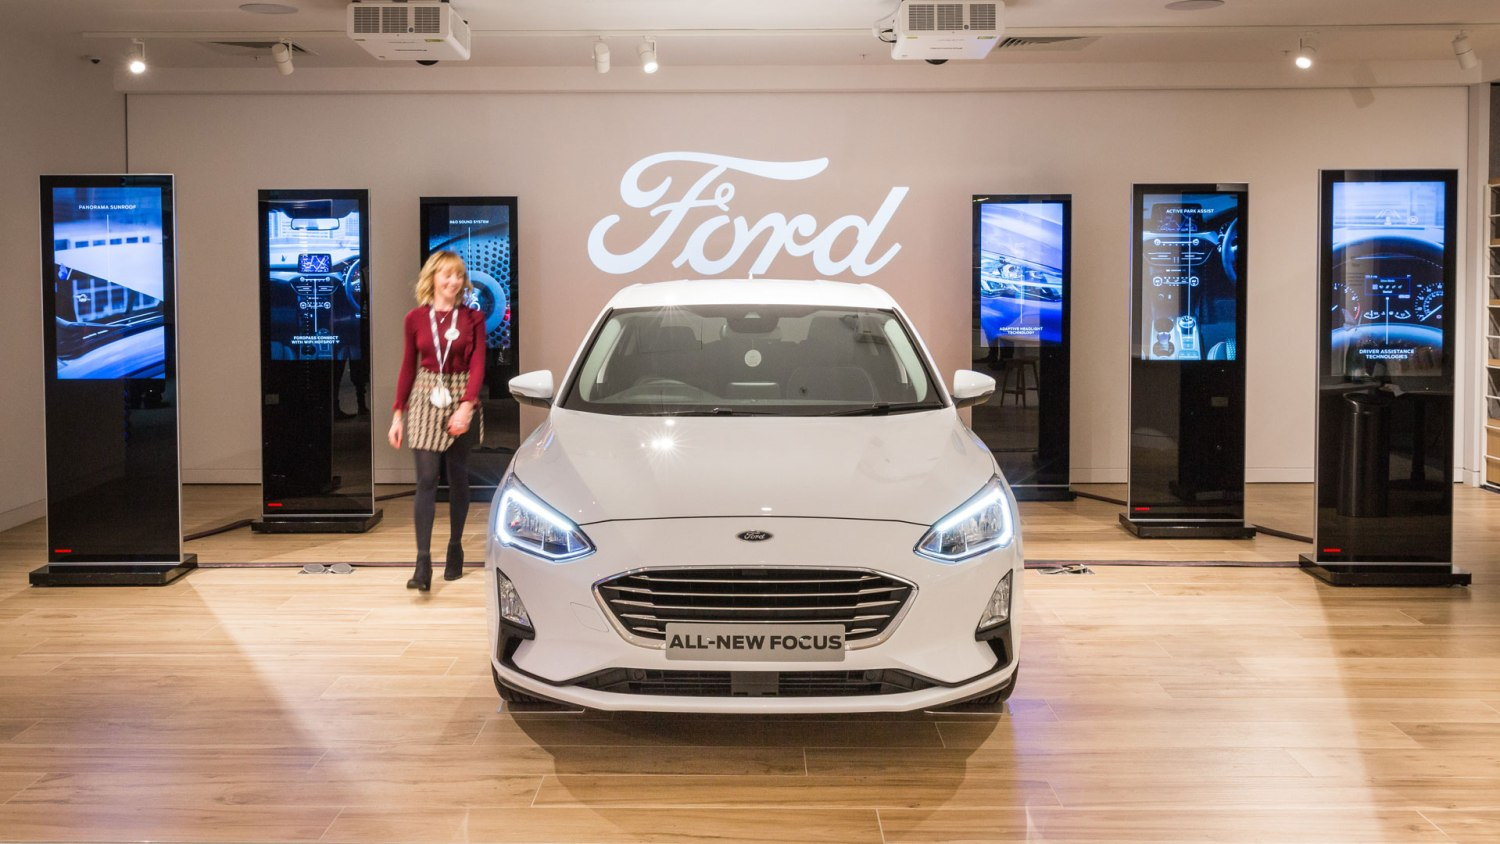 Ford dealer showroom